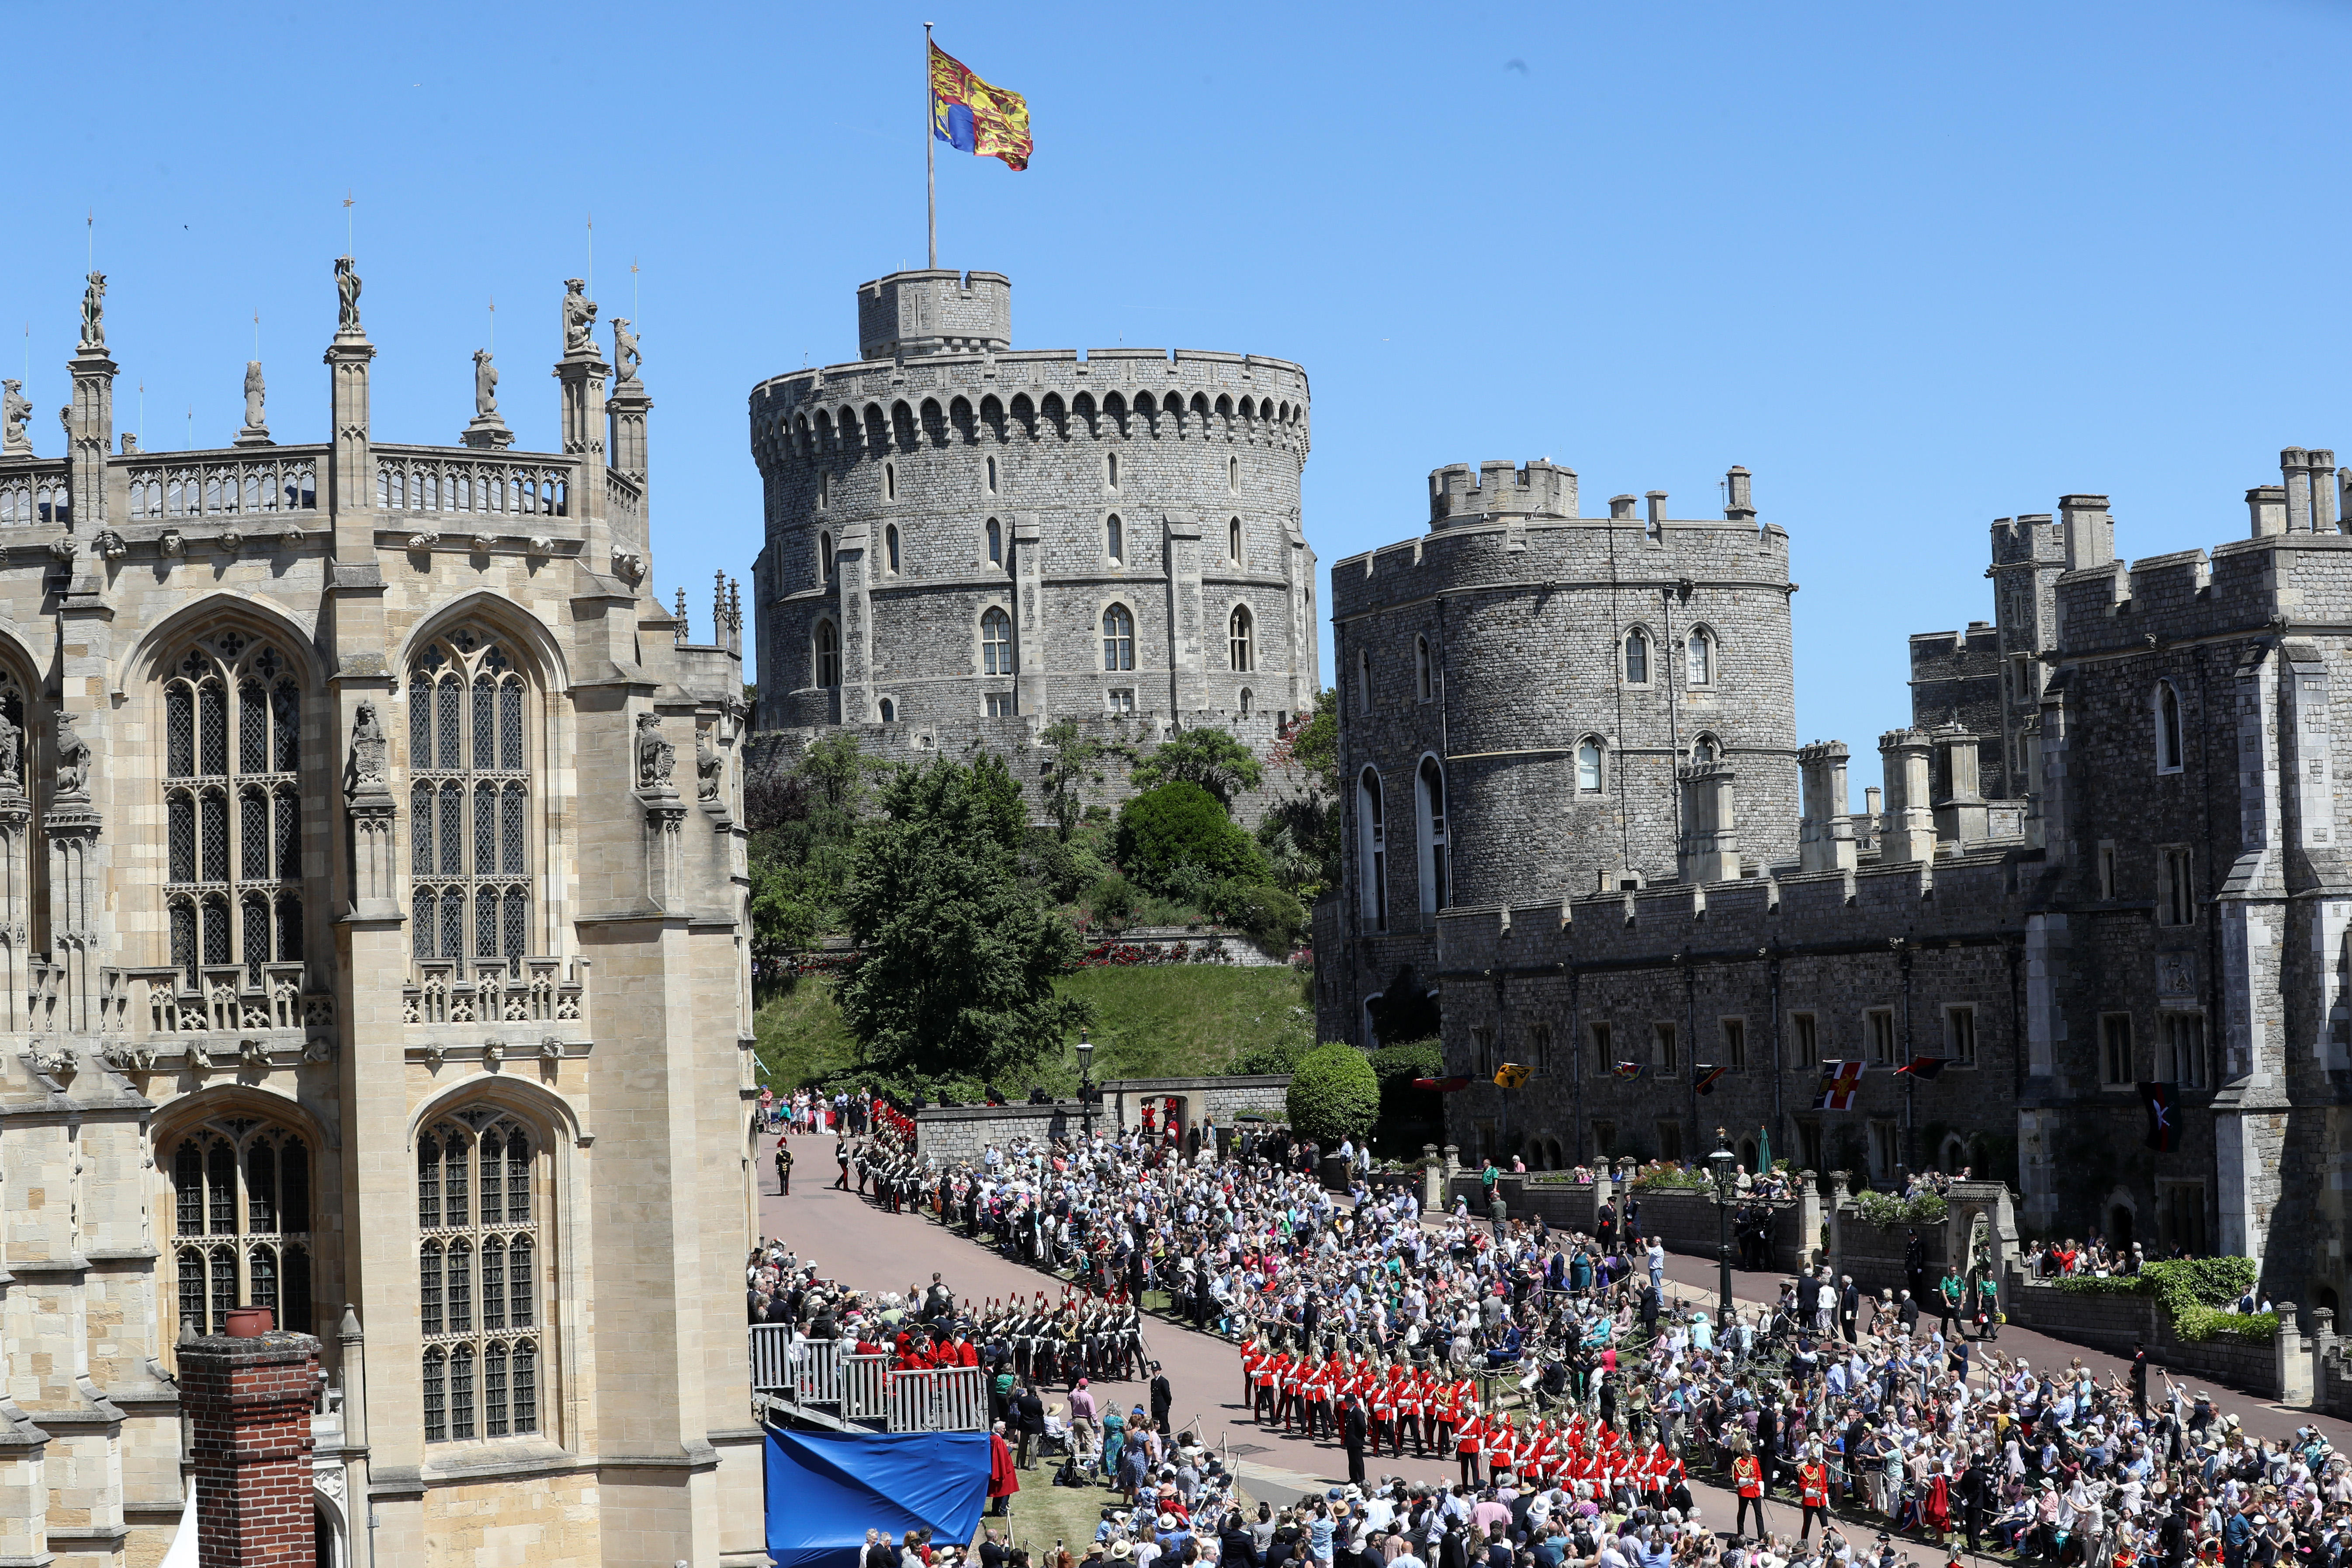 Trump to watch military parade at Windsor Castle - CBS News